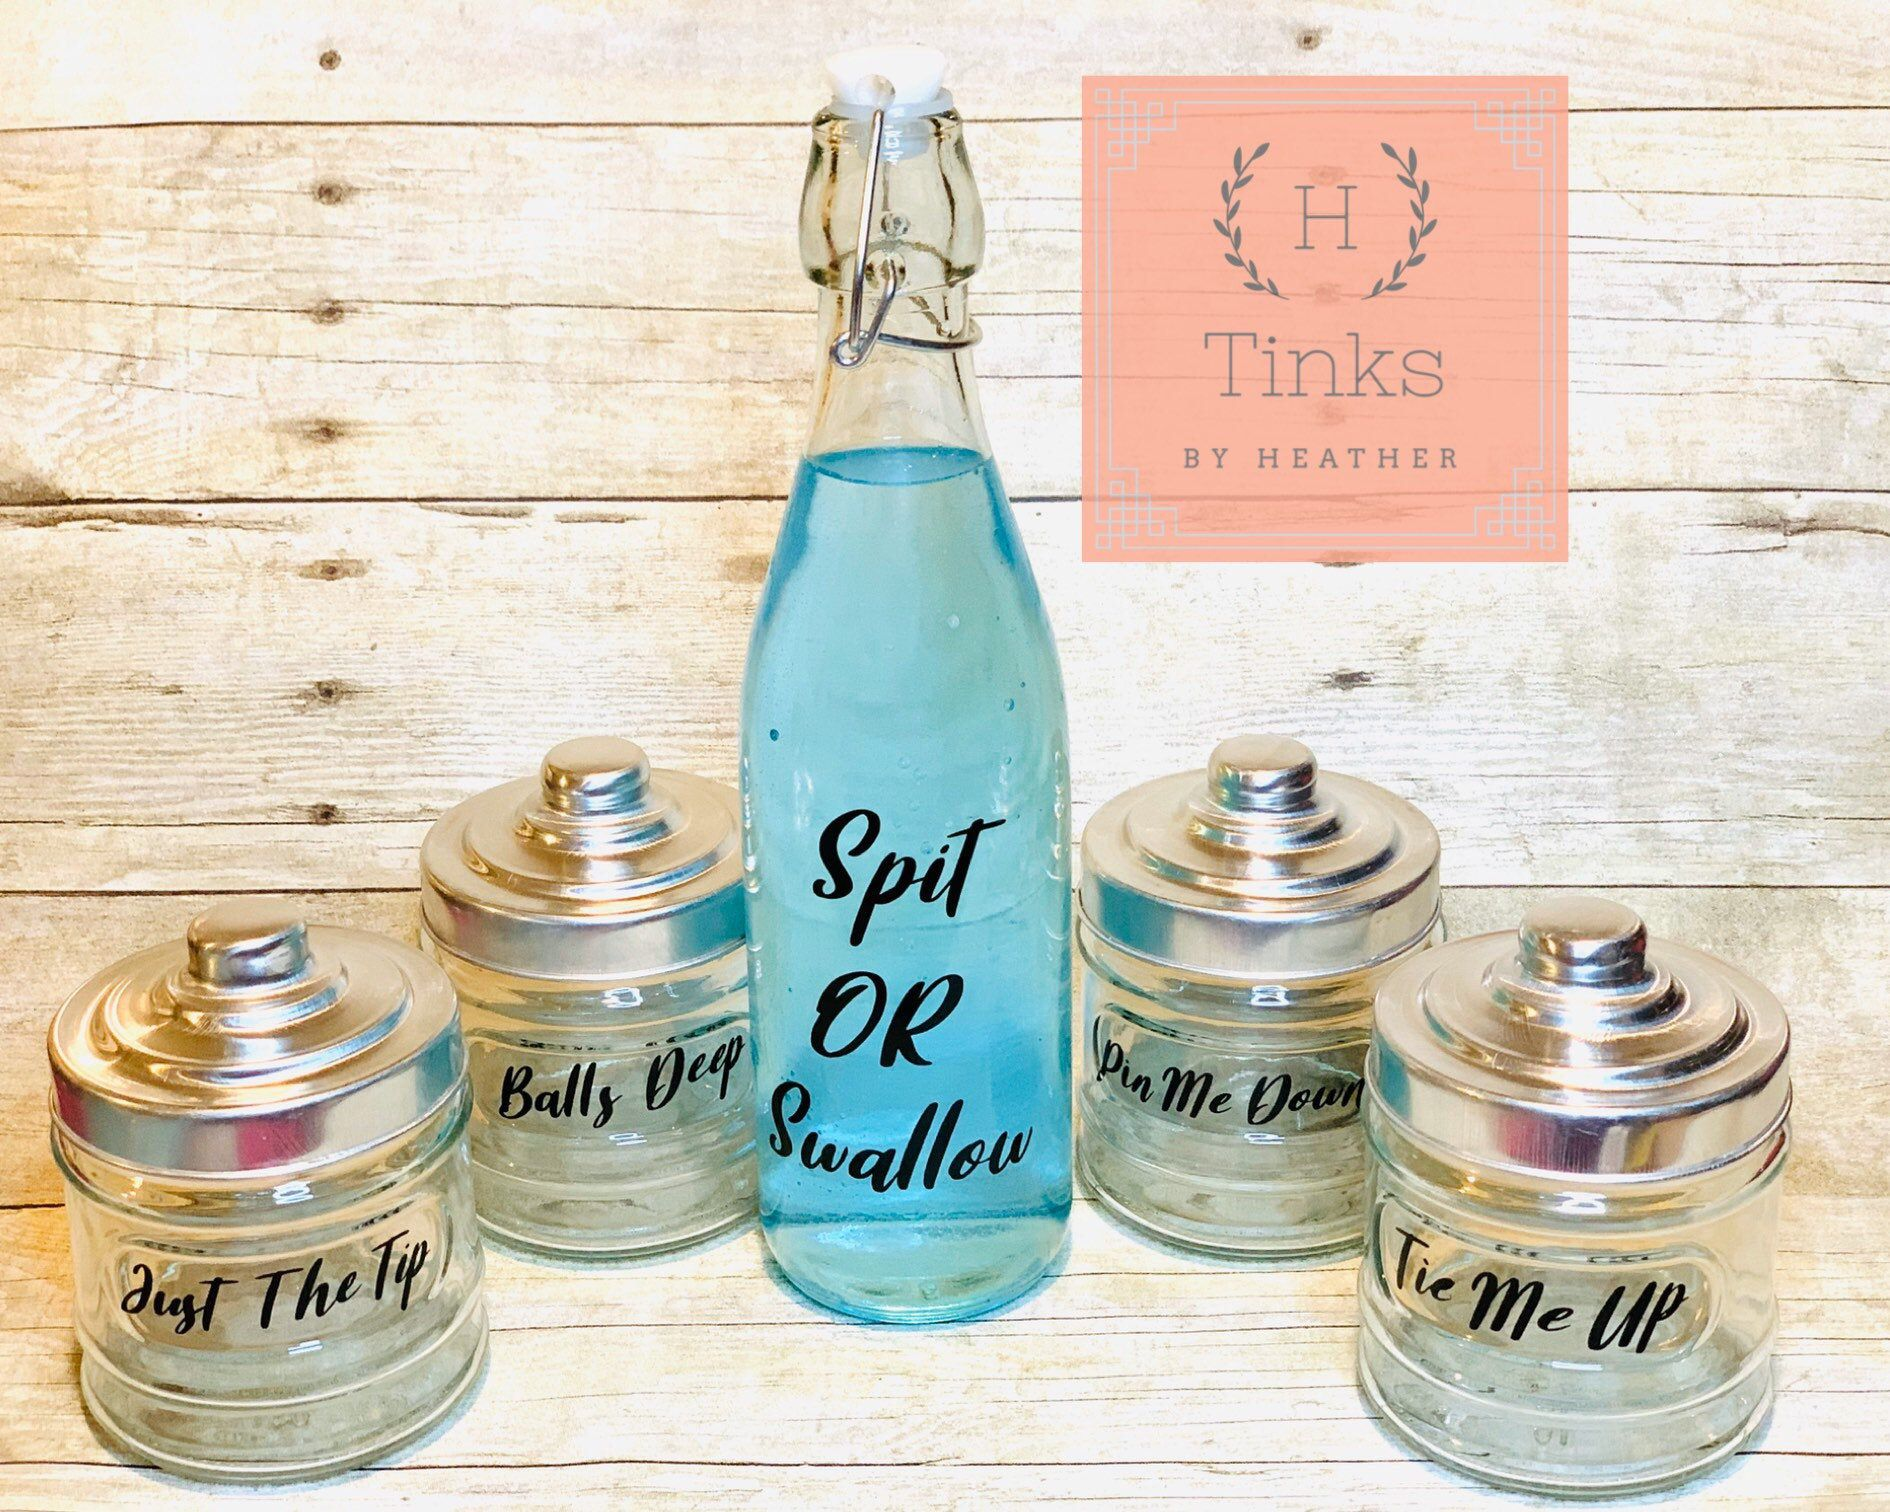 Balls Deep Just The Tip Funny Bathroom Decor By Tinksbyheather On Etsy Https Www Etsy Com Listing 7540154 Funny Bathroom Decor Bathroom Jars Bathroom Decor